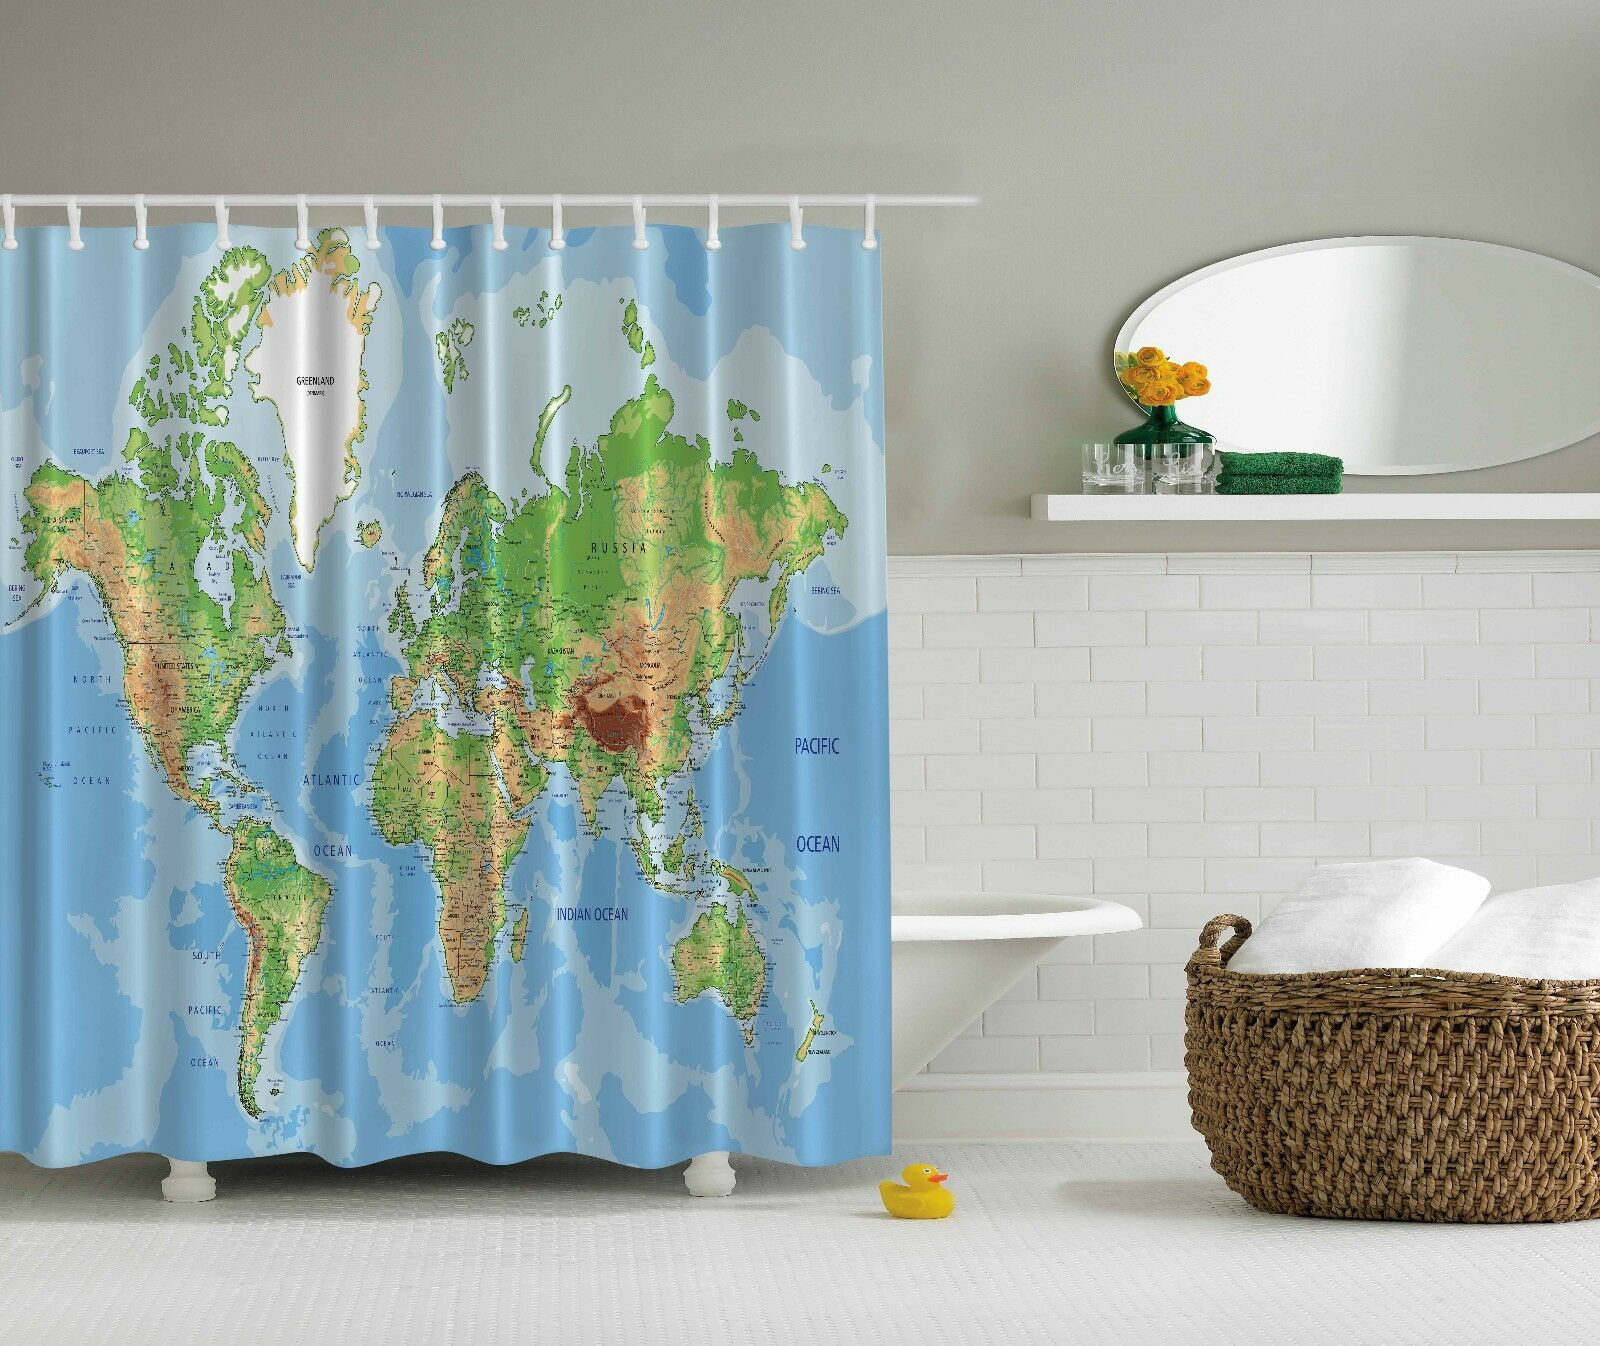 World map globe educational geographical shower curtain extra long picture 1 of 1 gumiabroncs Image collections